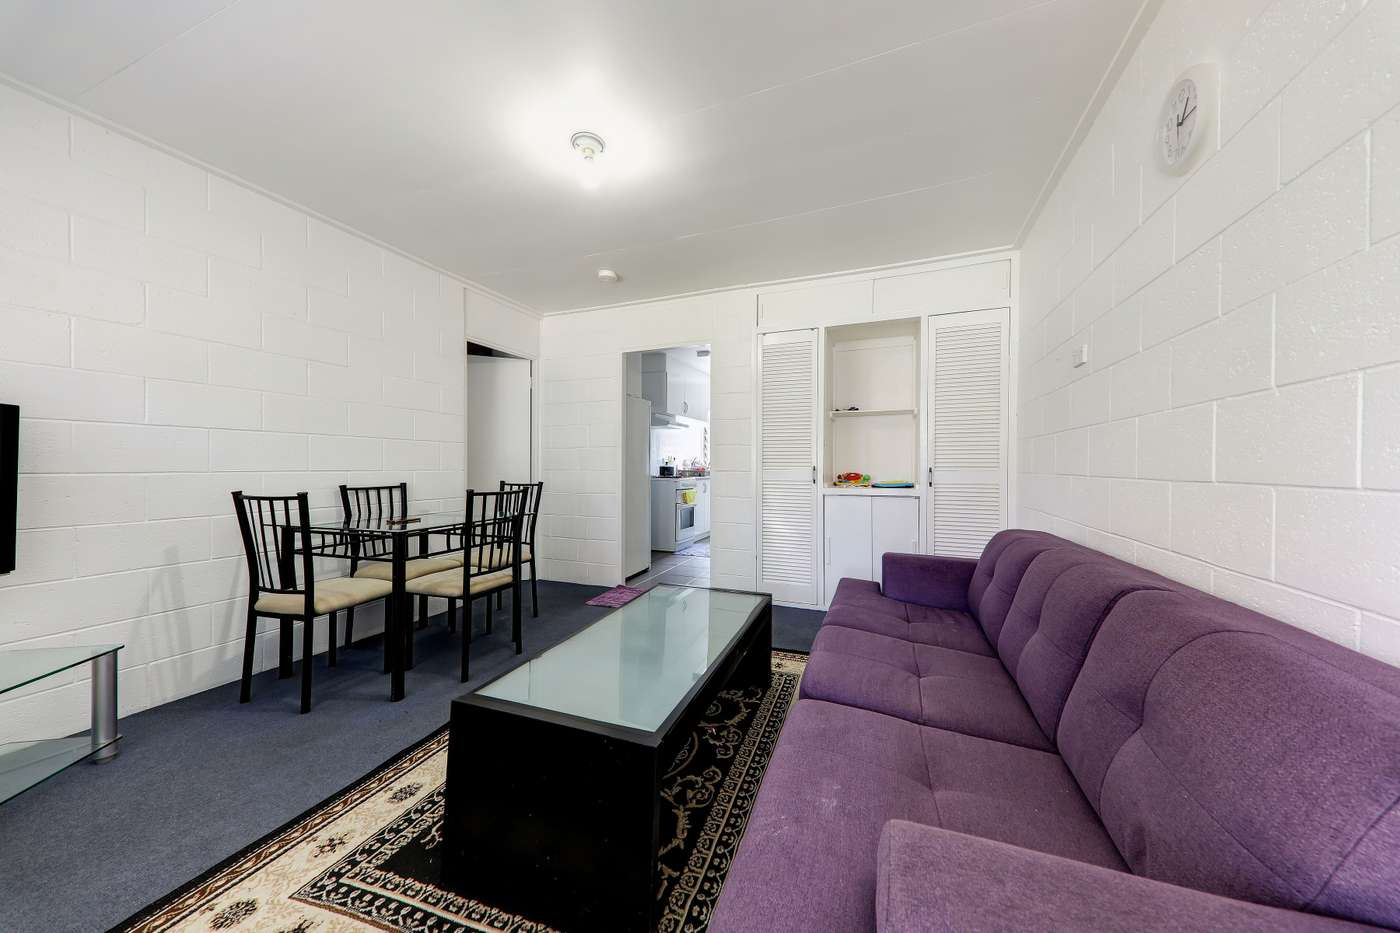 Main view of Homely house listing, 16 Sycamore Street, Mudjimba, QLD 4564